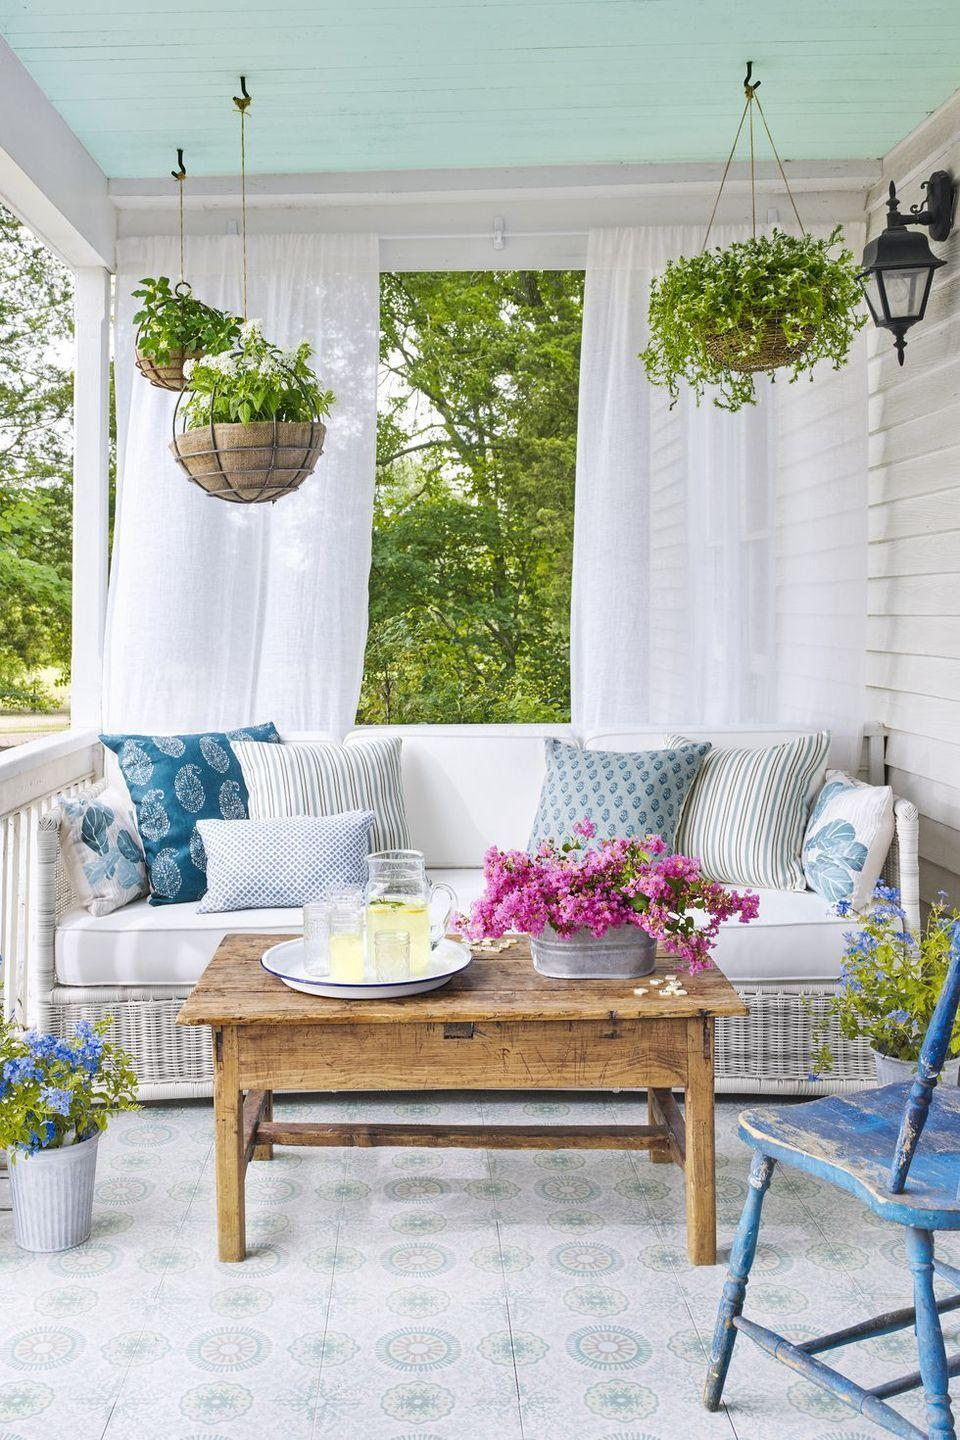 """<p>If you don't have space on the ground for the garden of your dreams, use <a href=""""https://www.goodhousekeeping.com/home/gardening/advice/g1007/backyard-decorating/?slide=18"""" rel=""""nofollow noopener"""" target=""""_blank"""" data-ylk=""""slk:porch ceilings"""" class=""""link rapid-noclick-resp"""">porch ceilings</a> to display your plant babies in hanging baskets.</p>"""